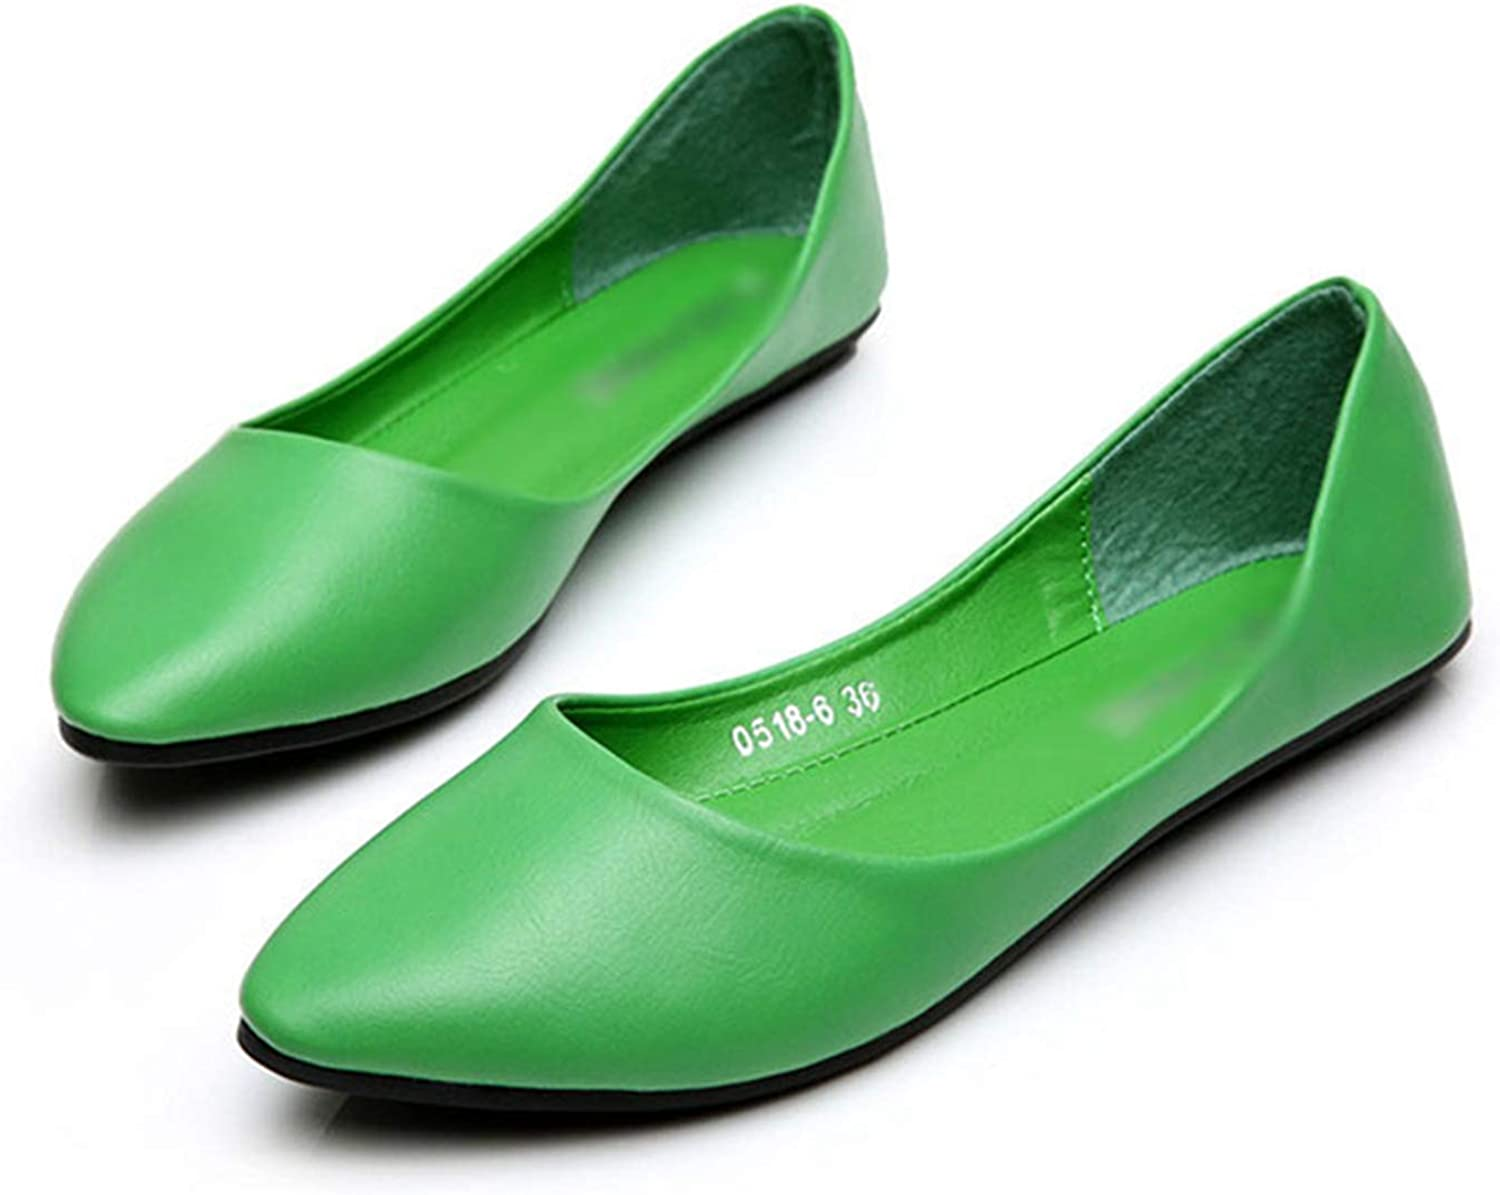 Kyle Walsh Pa Women's Flats shoes Slip-on Shallow Female Soft Casual Working Driving Moccasins